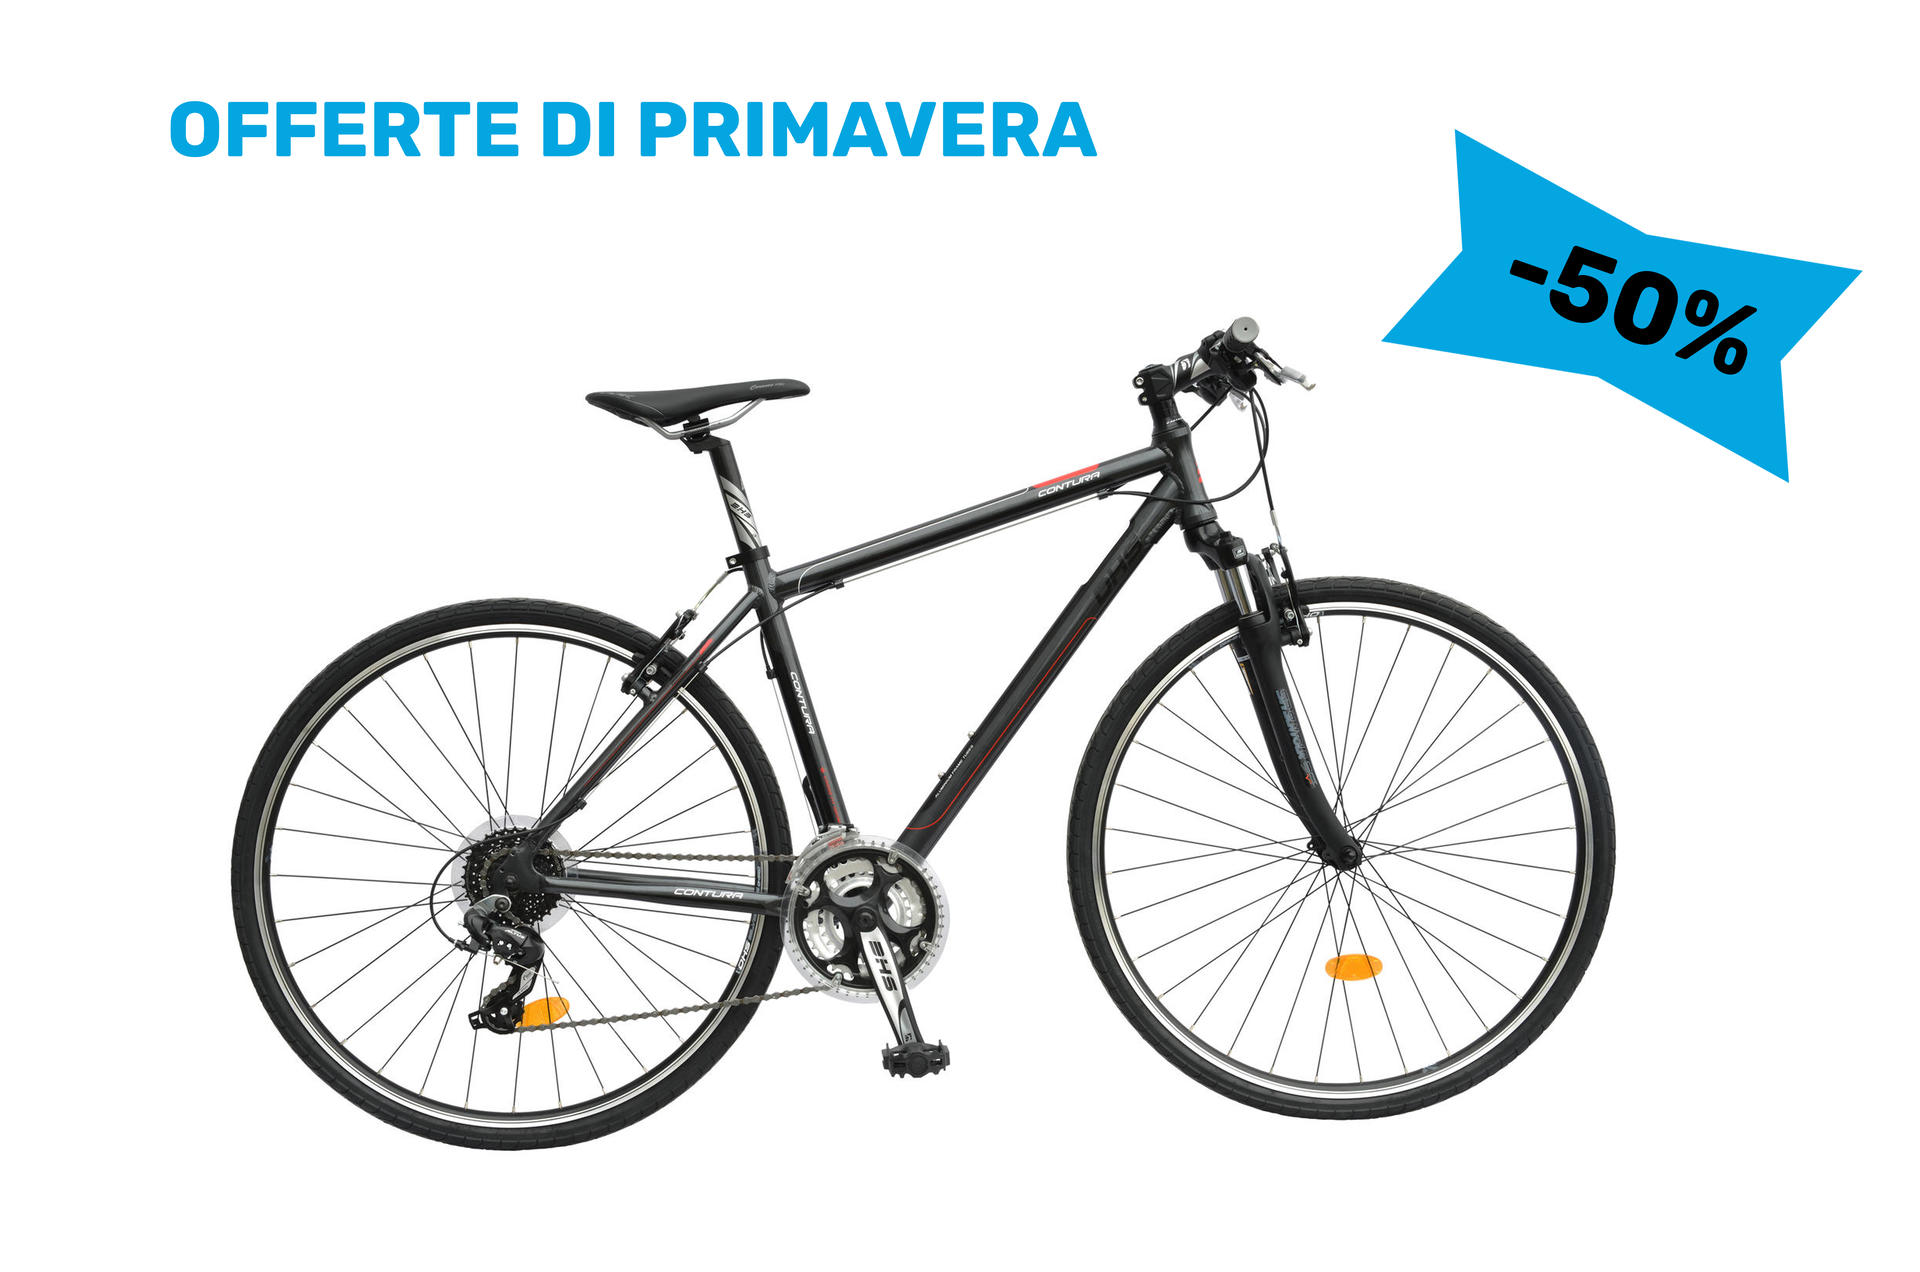 Bicicletta uomo da cross contura DHS 2865 Grey-Red 530mm